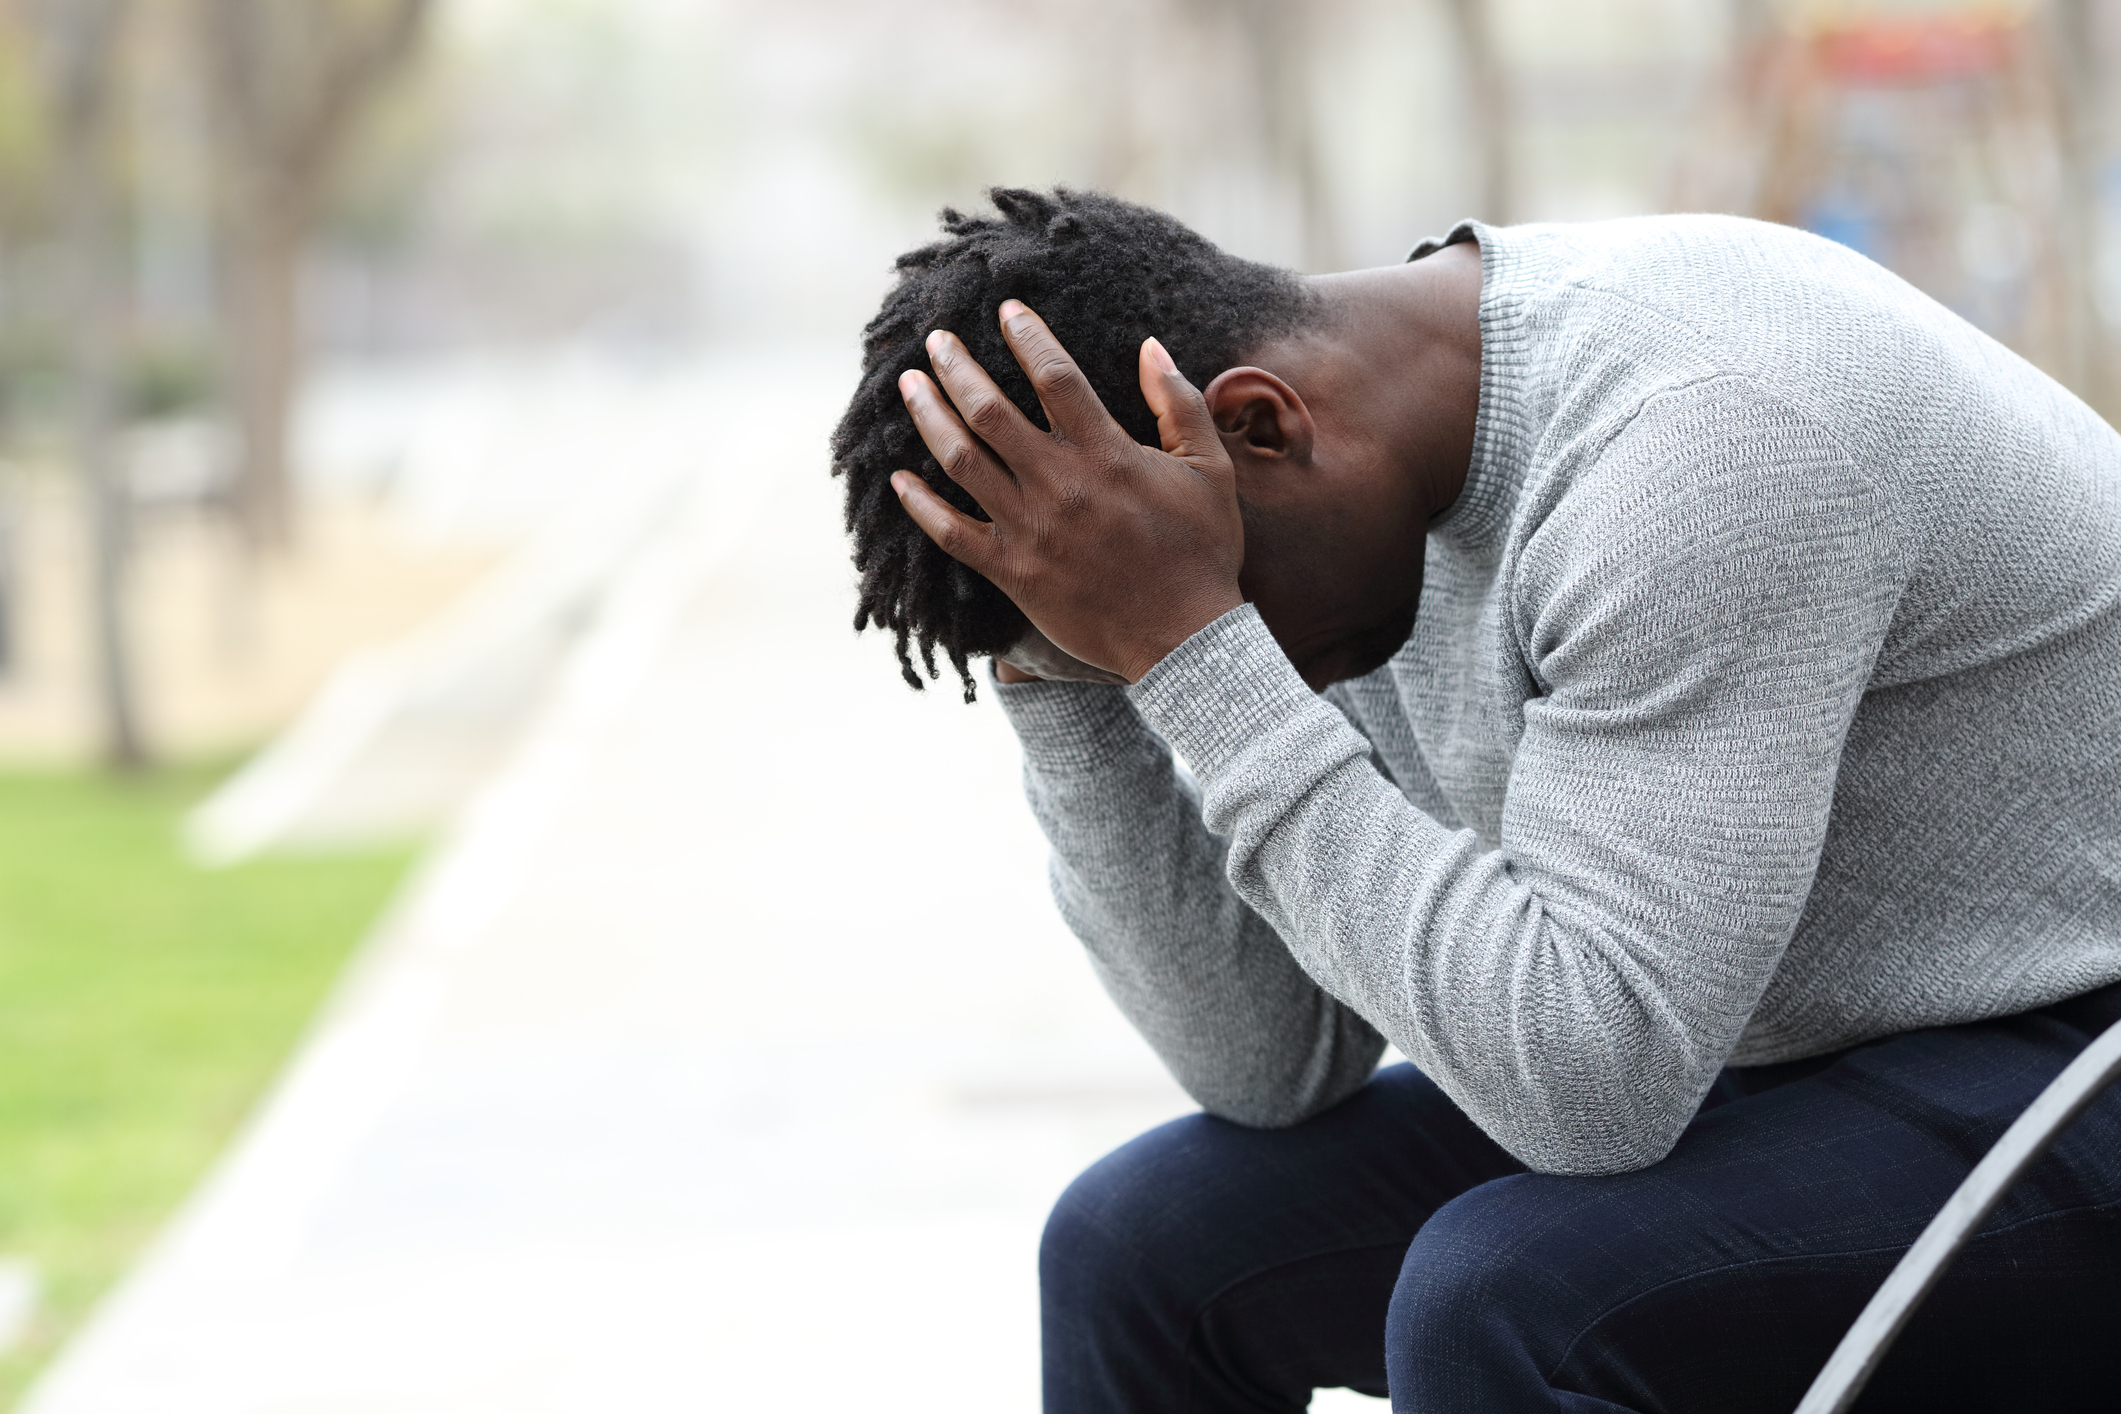 Sad man holding his head. Image credit: iStock